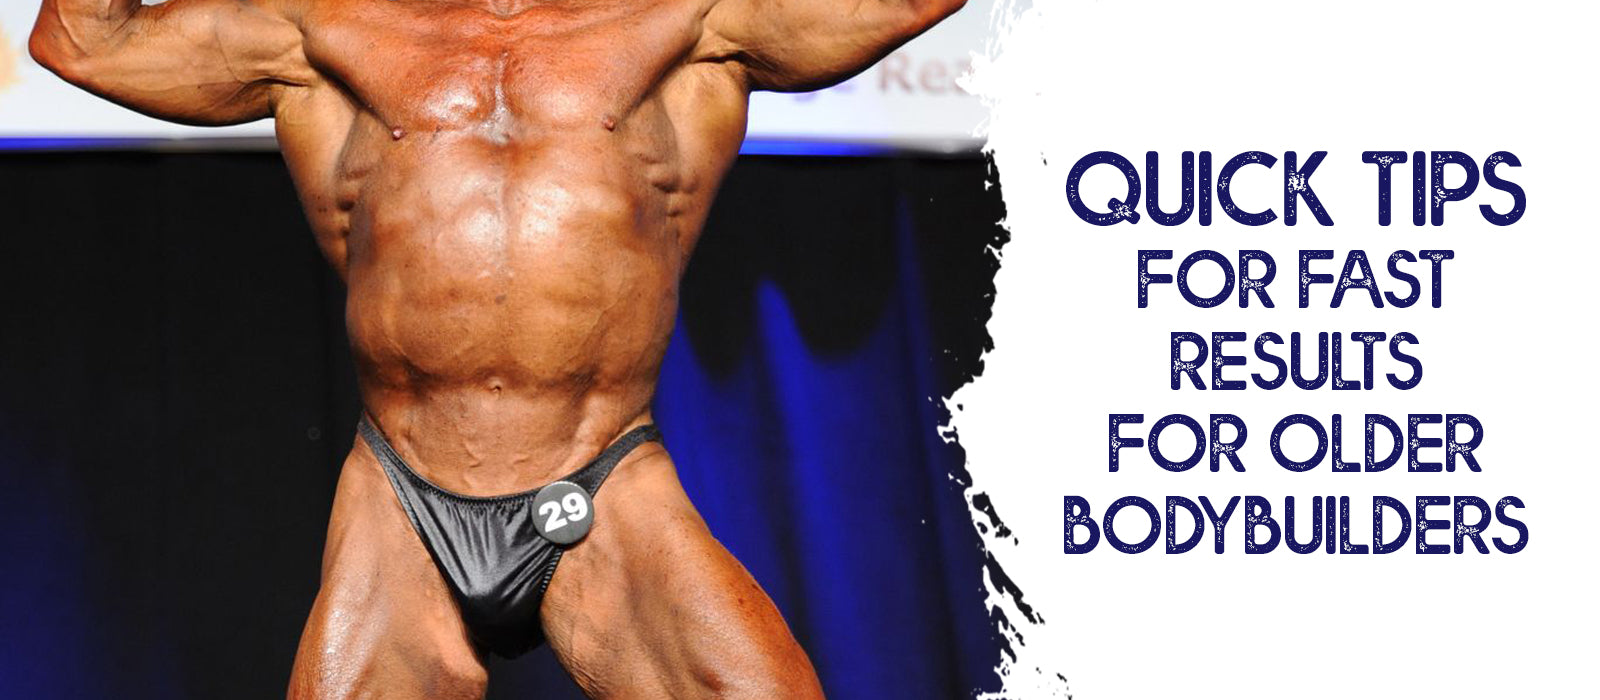 Quick Tips For Fast Results For Older Bodybuilders